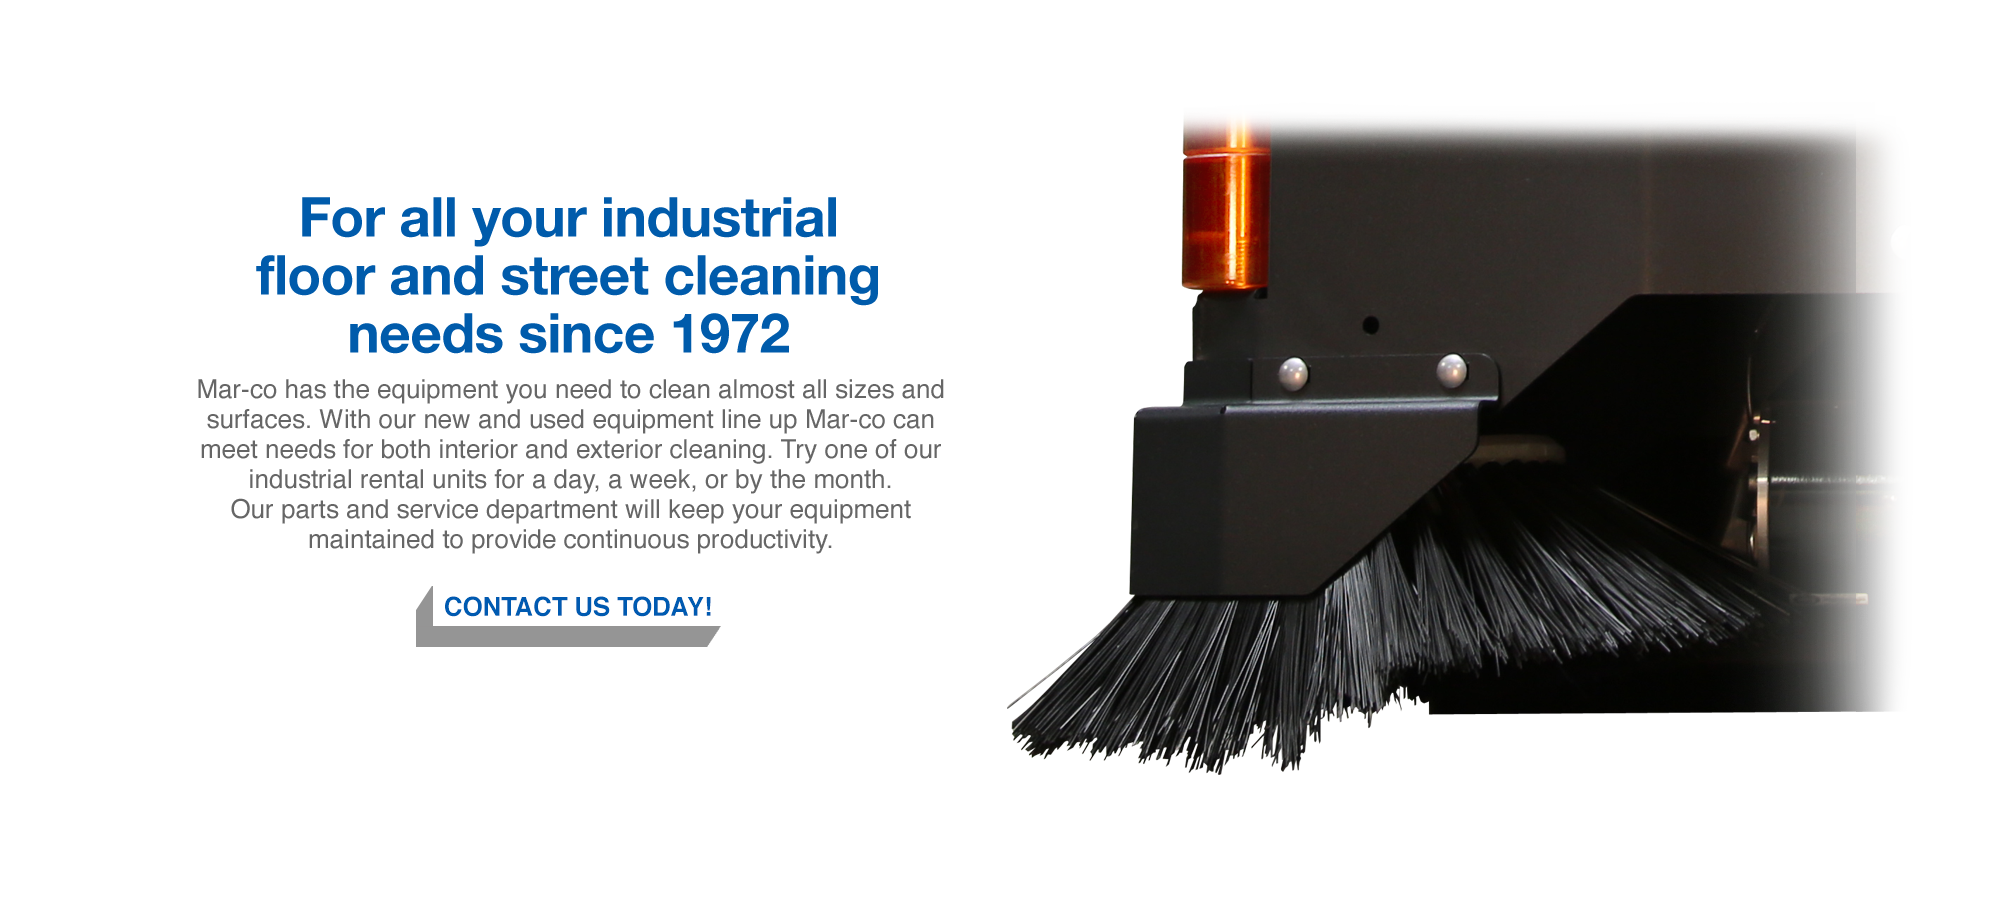 For all your industrial floor and street clenaing needs since 1972